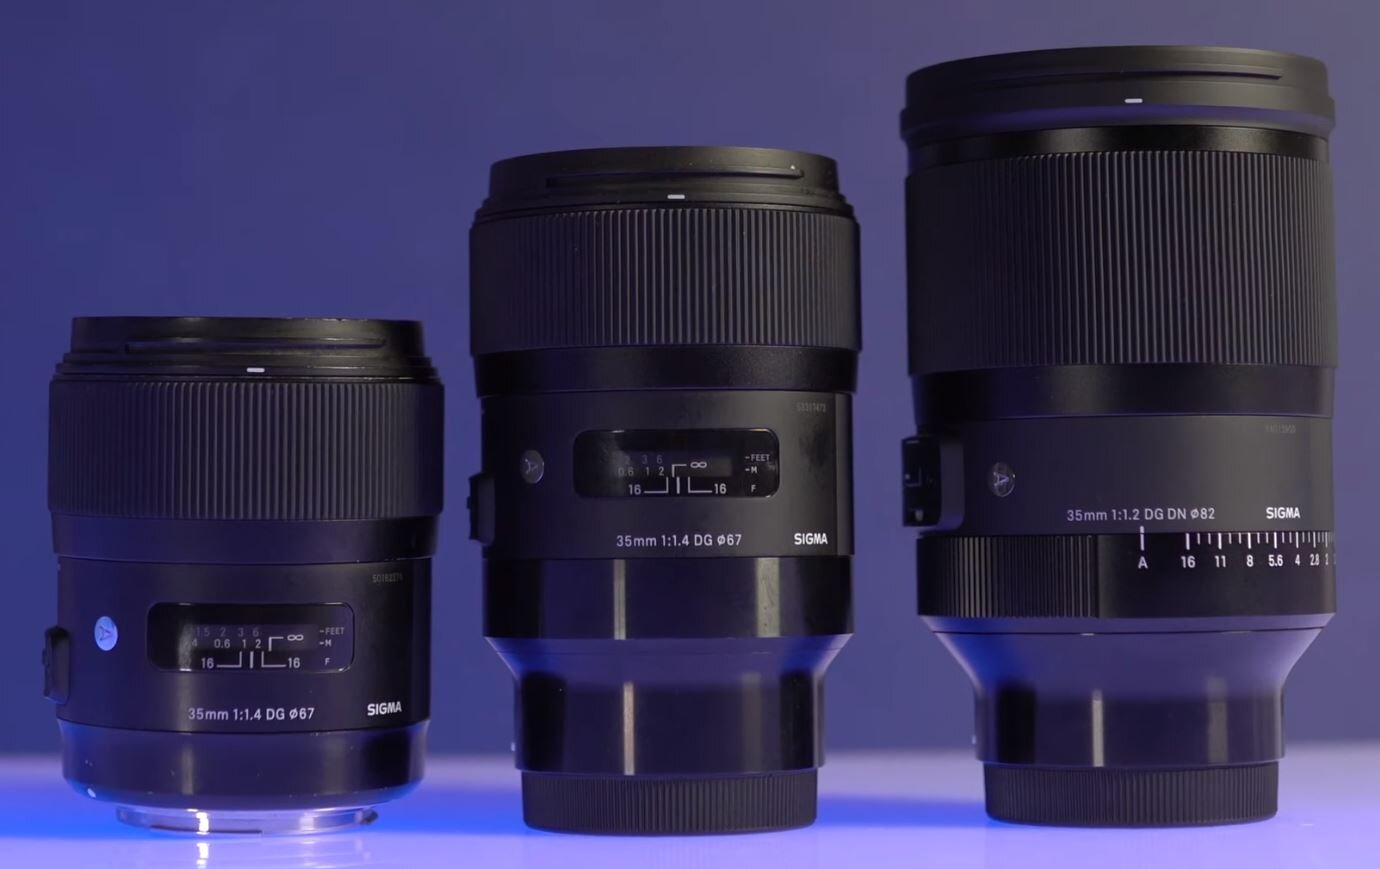 All the 35mm lenses from Sigma